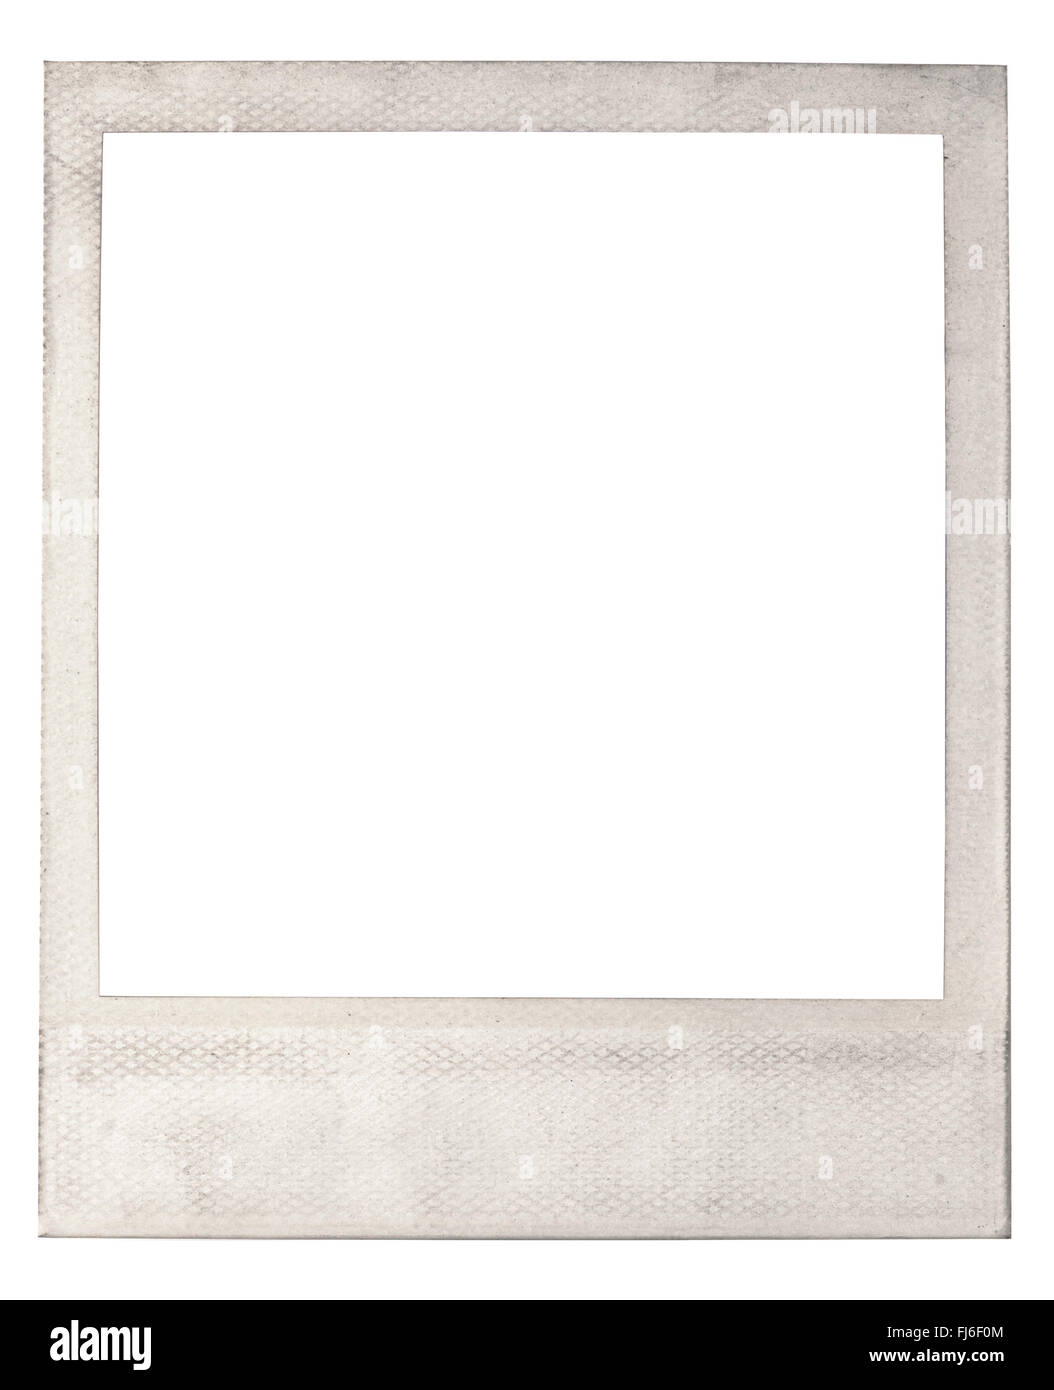 Polaroid Frame Stock Photos & Polaroid Frame Stock Images - Alamy